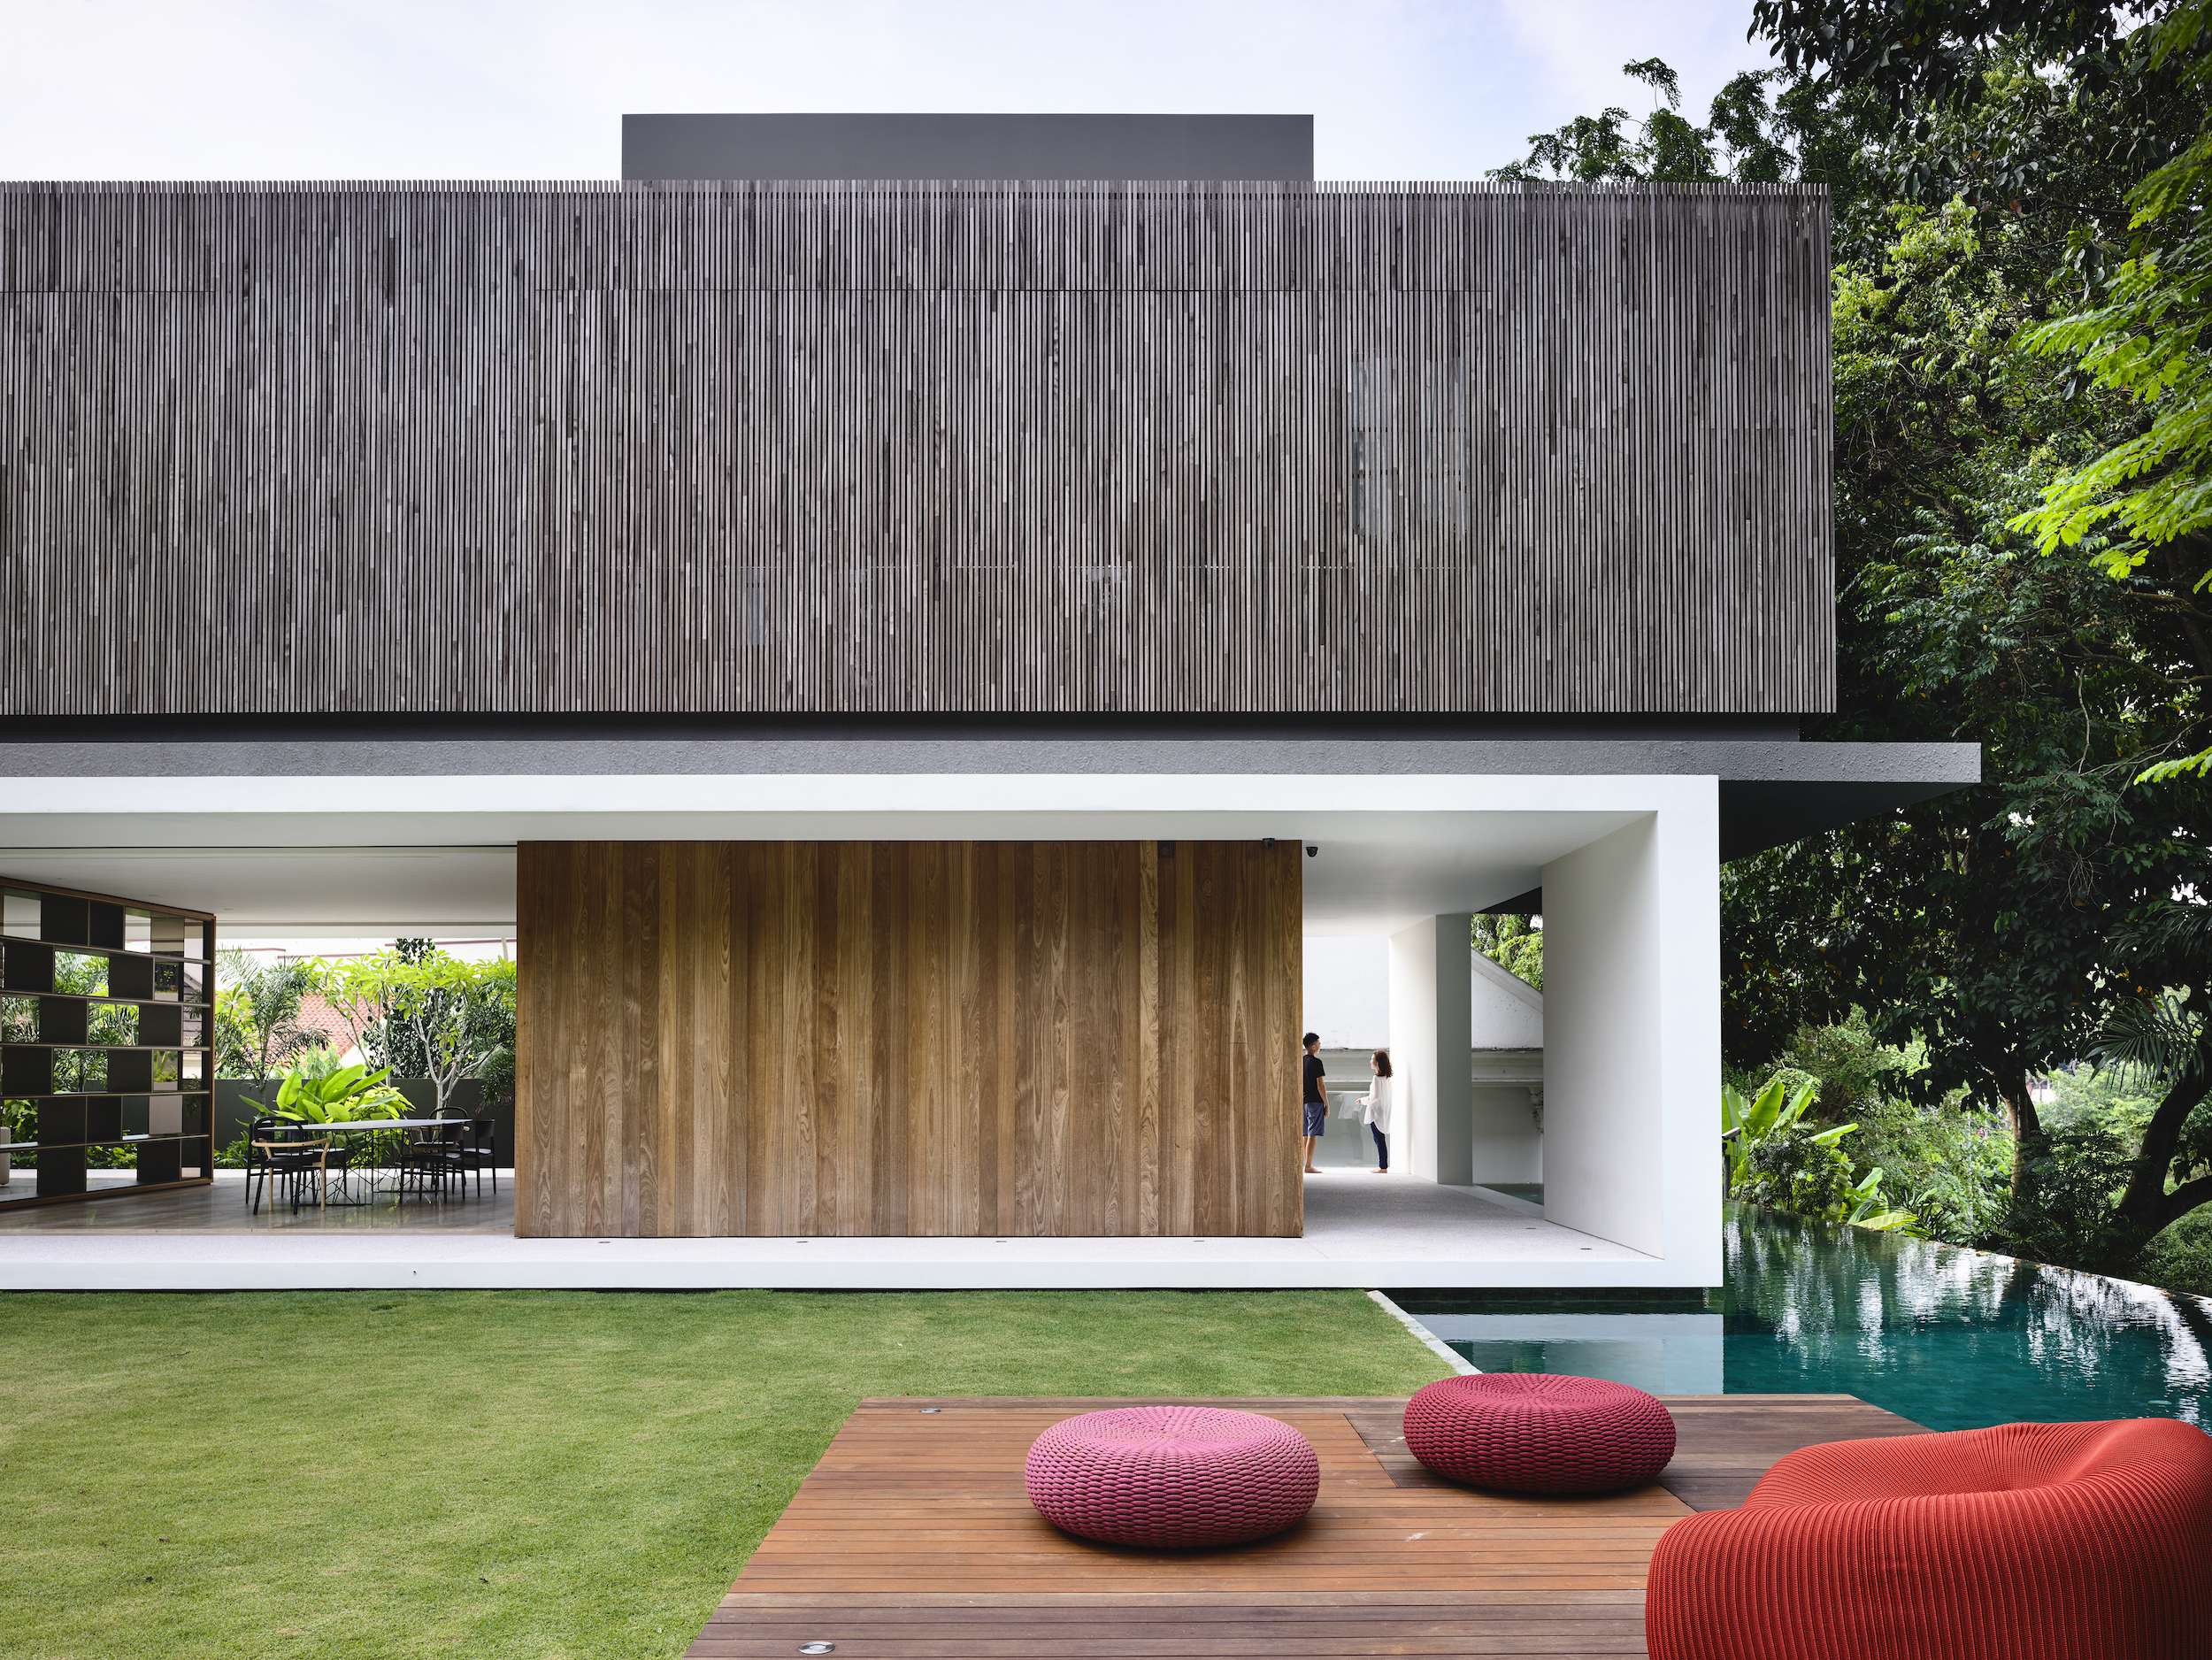 HUSBAND AND WIFE TEAM ENVISION KAP HOUSE